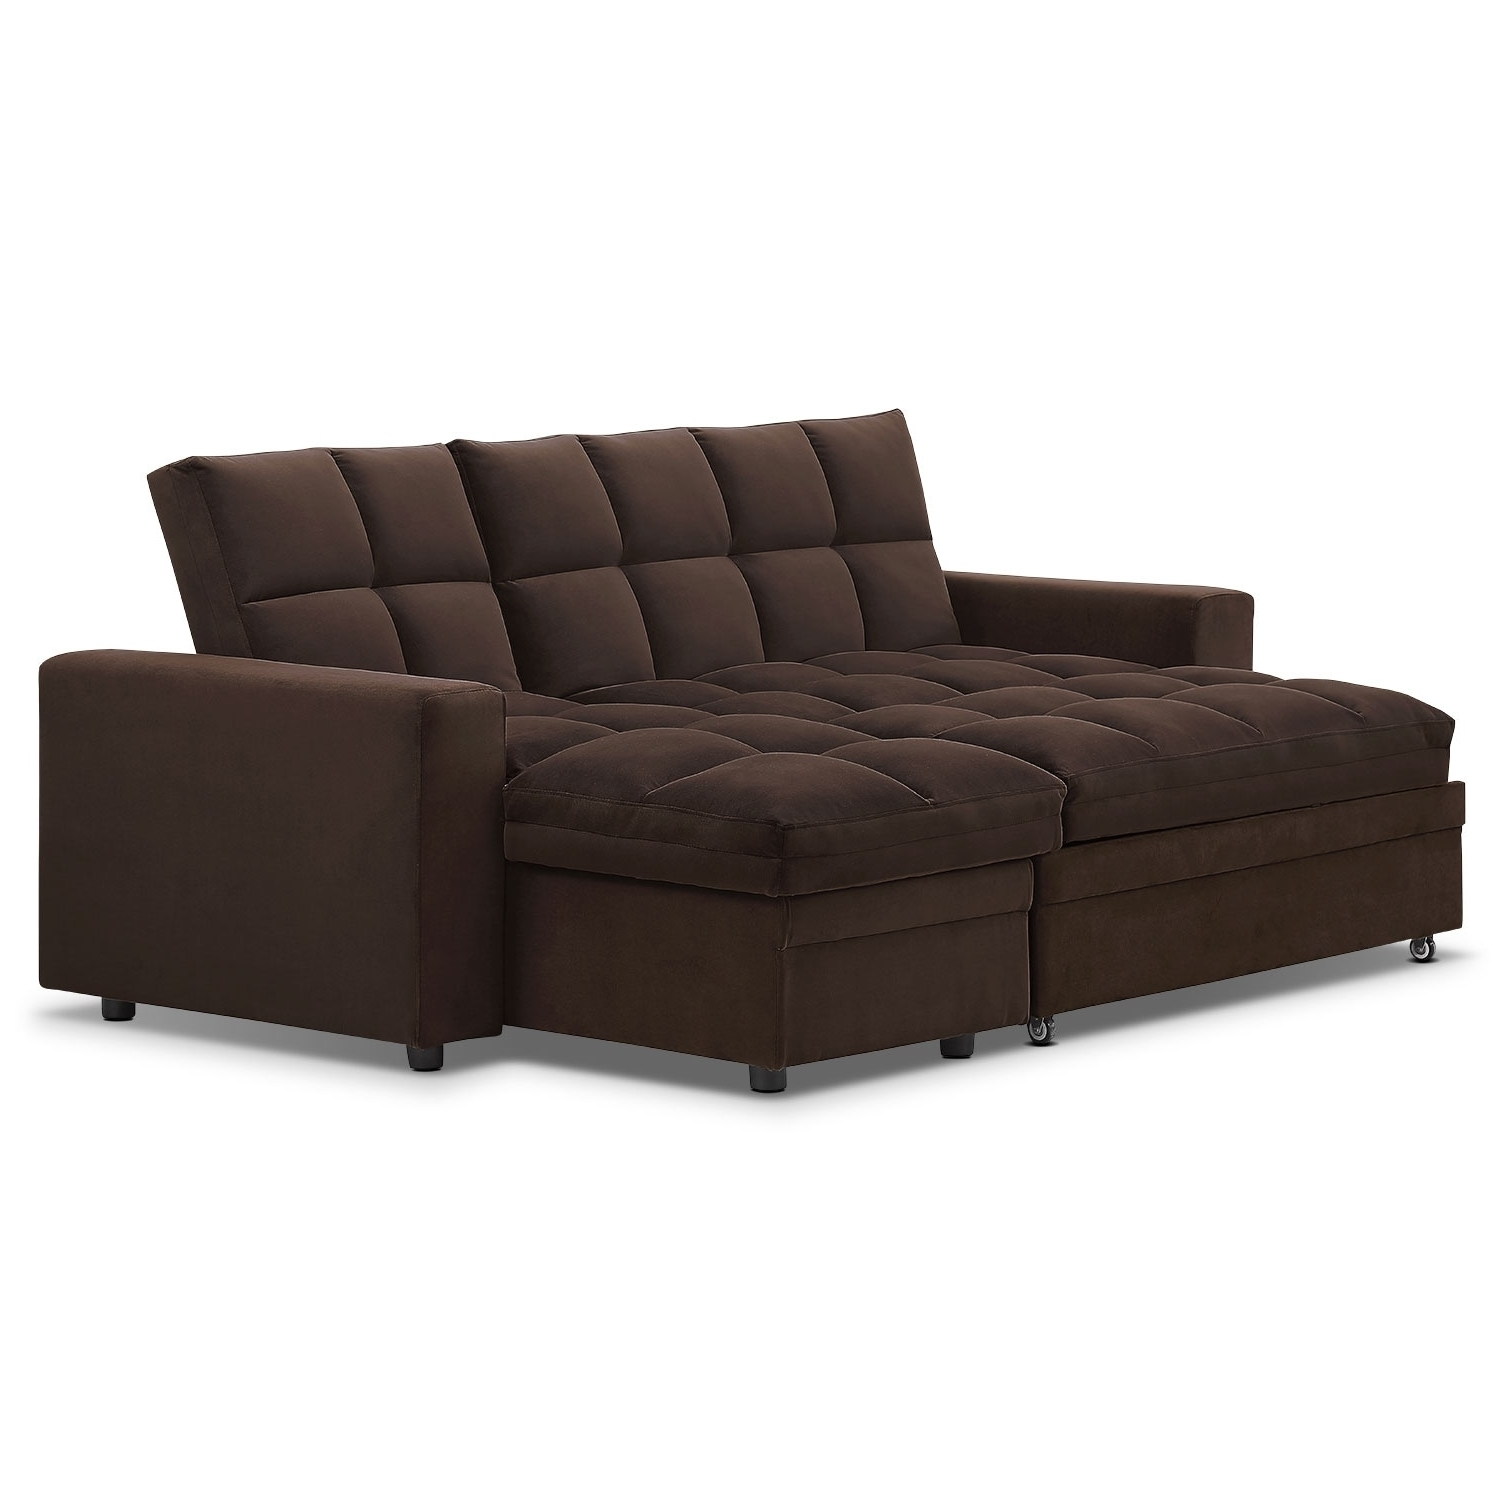 Value City Furniture Throughout Widely Used Chaise Sofa Beds (Gallery 2 of 15)